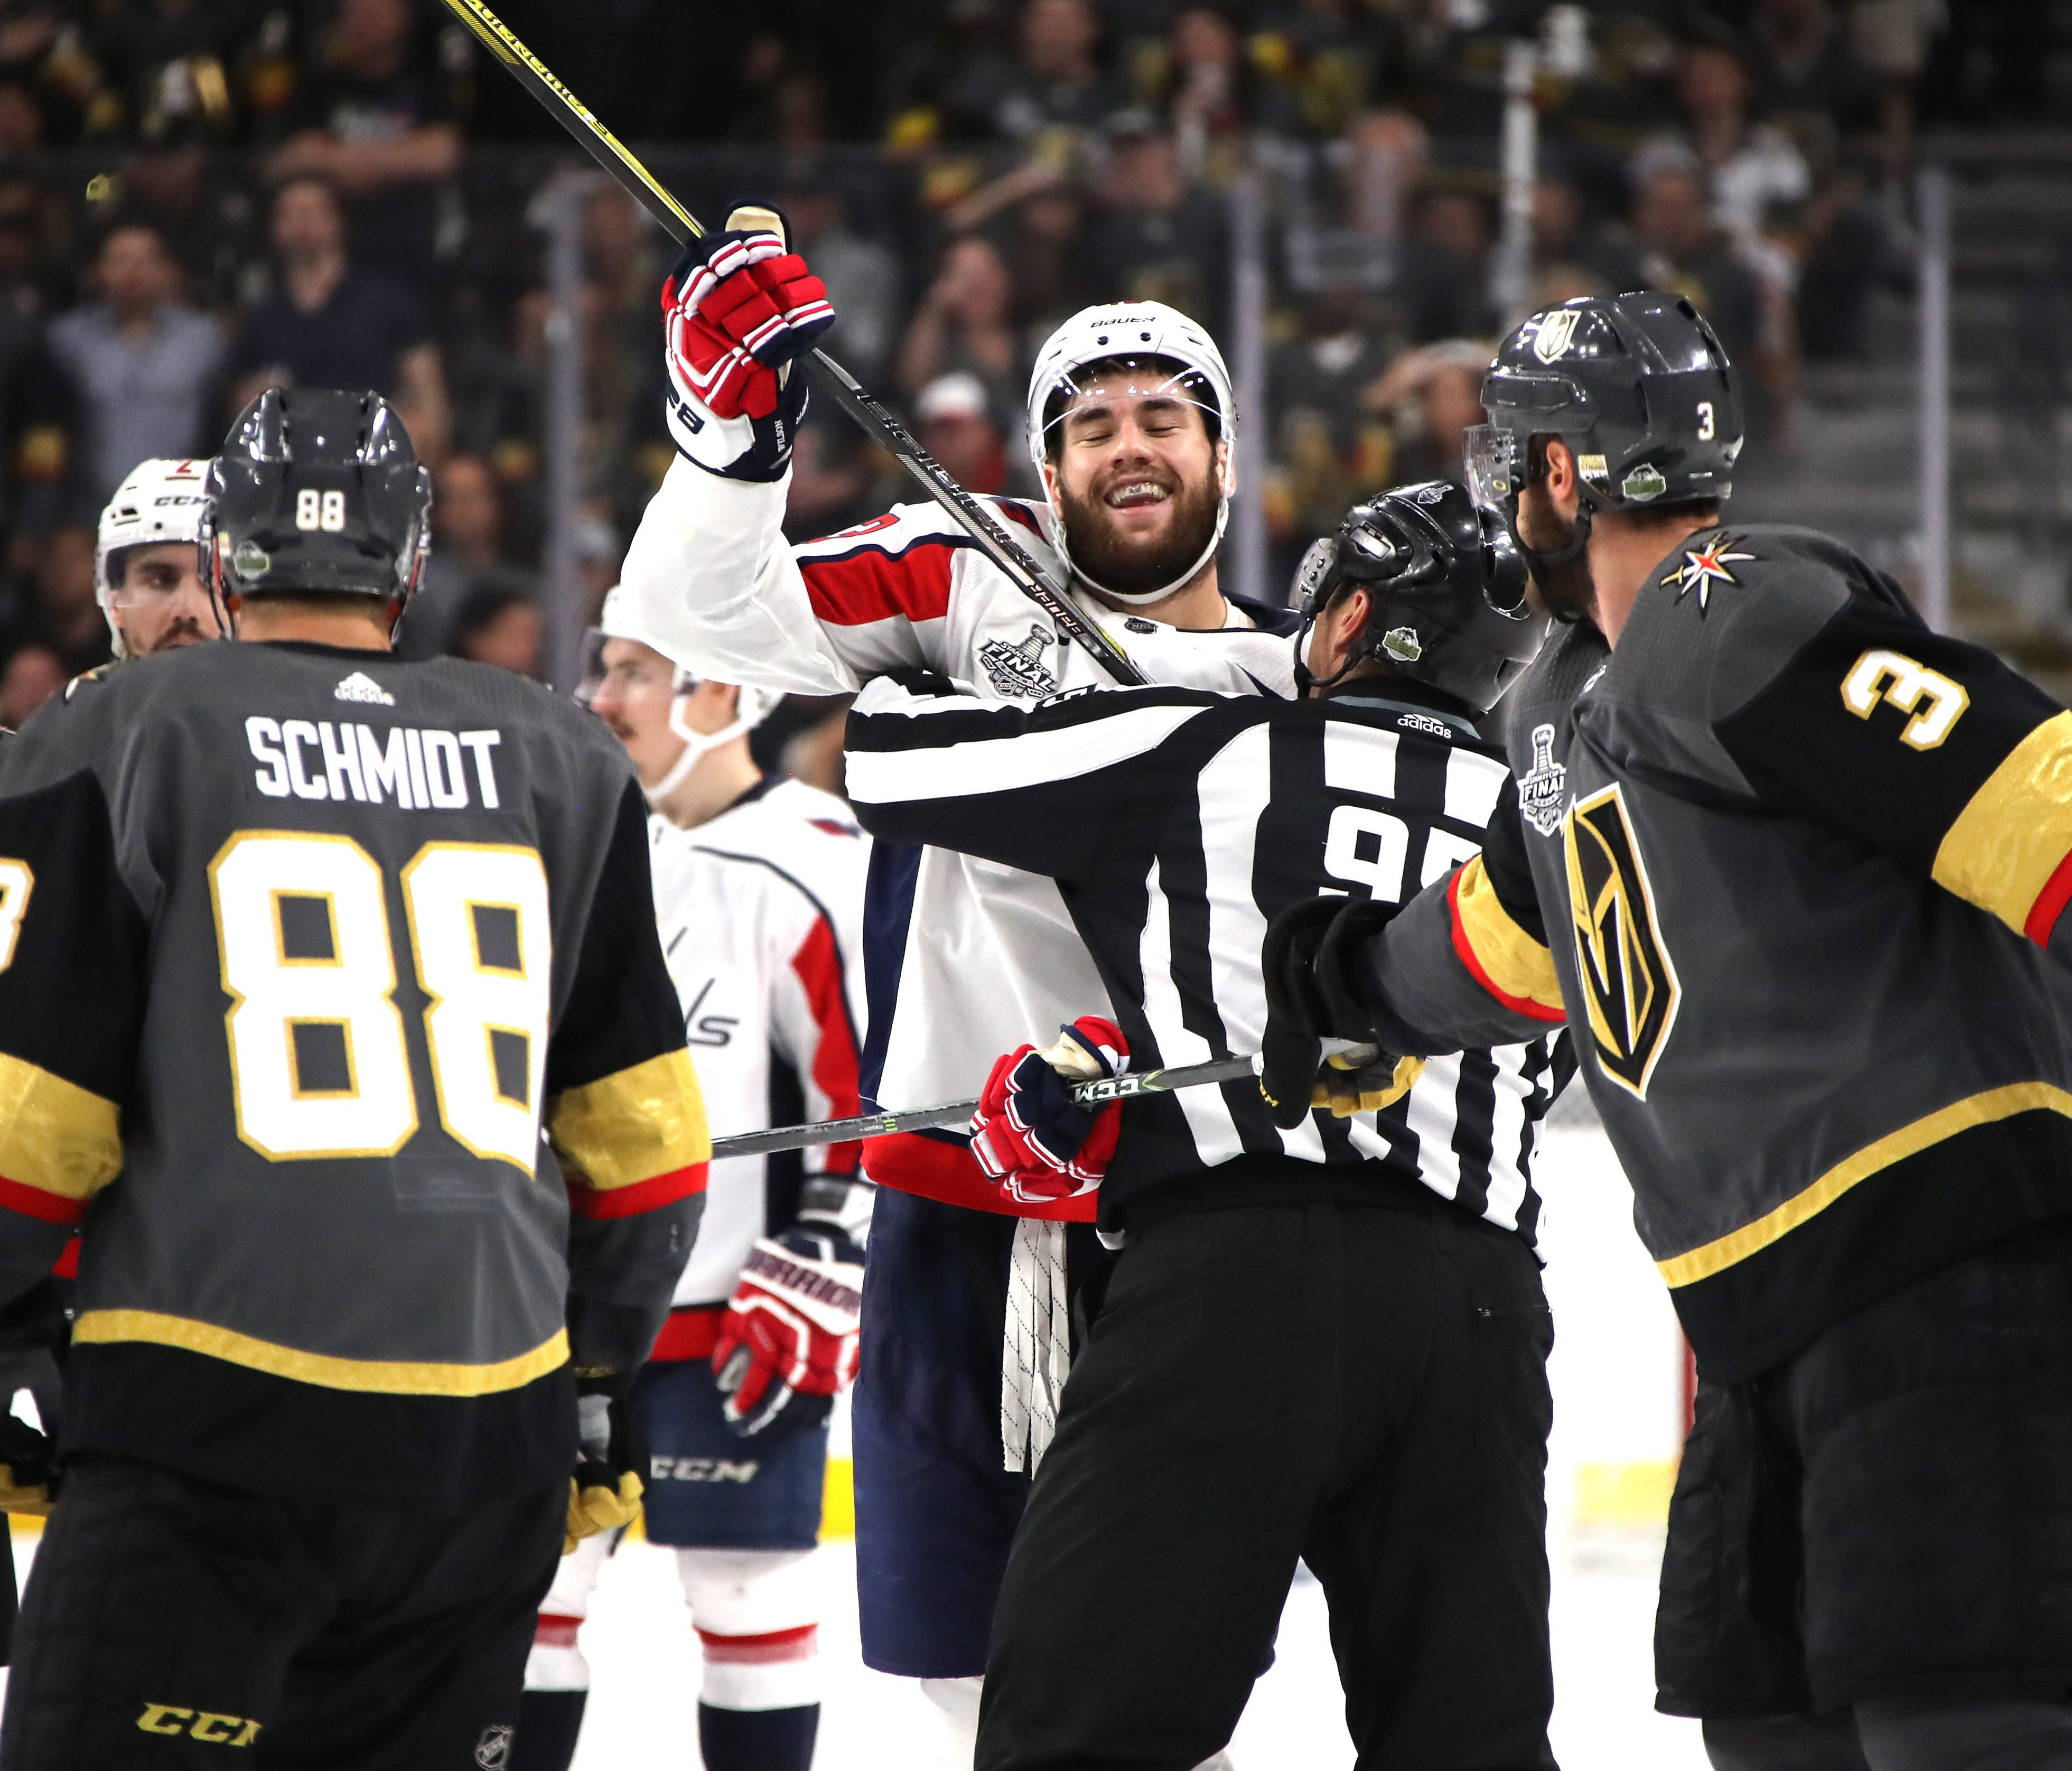 Tom Wilson of the Washington Capitals reacts after the whistle against the Vegas Golden Knights during the third period of Game 1.